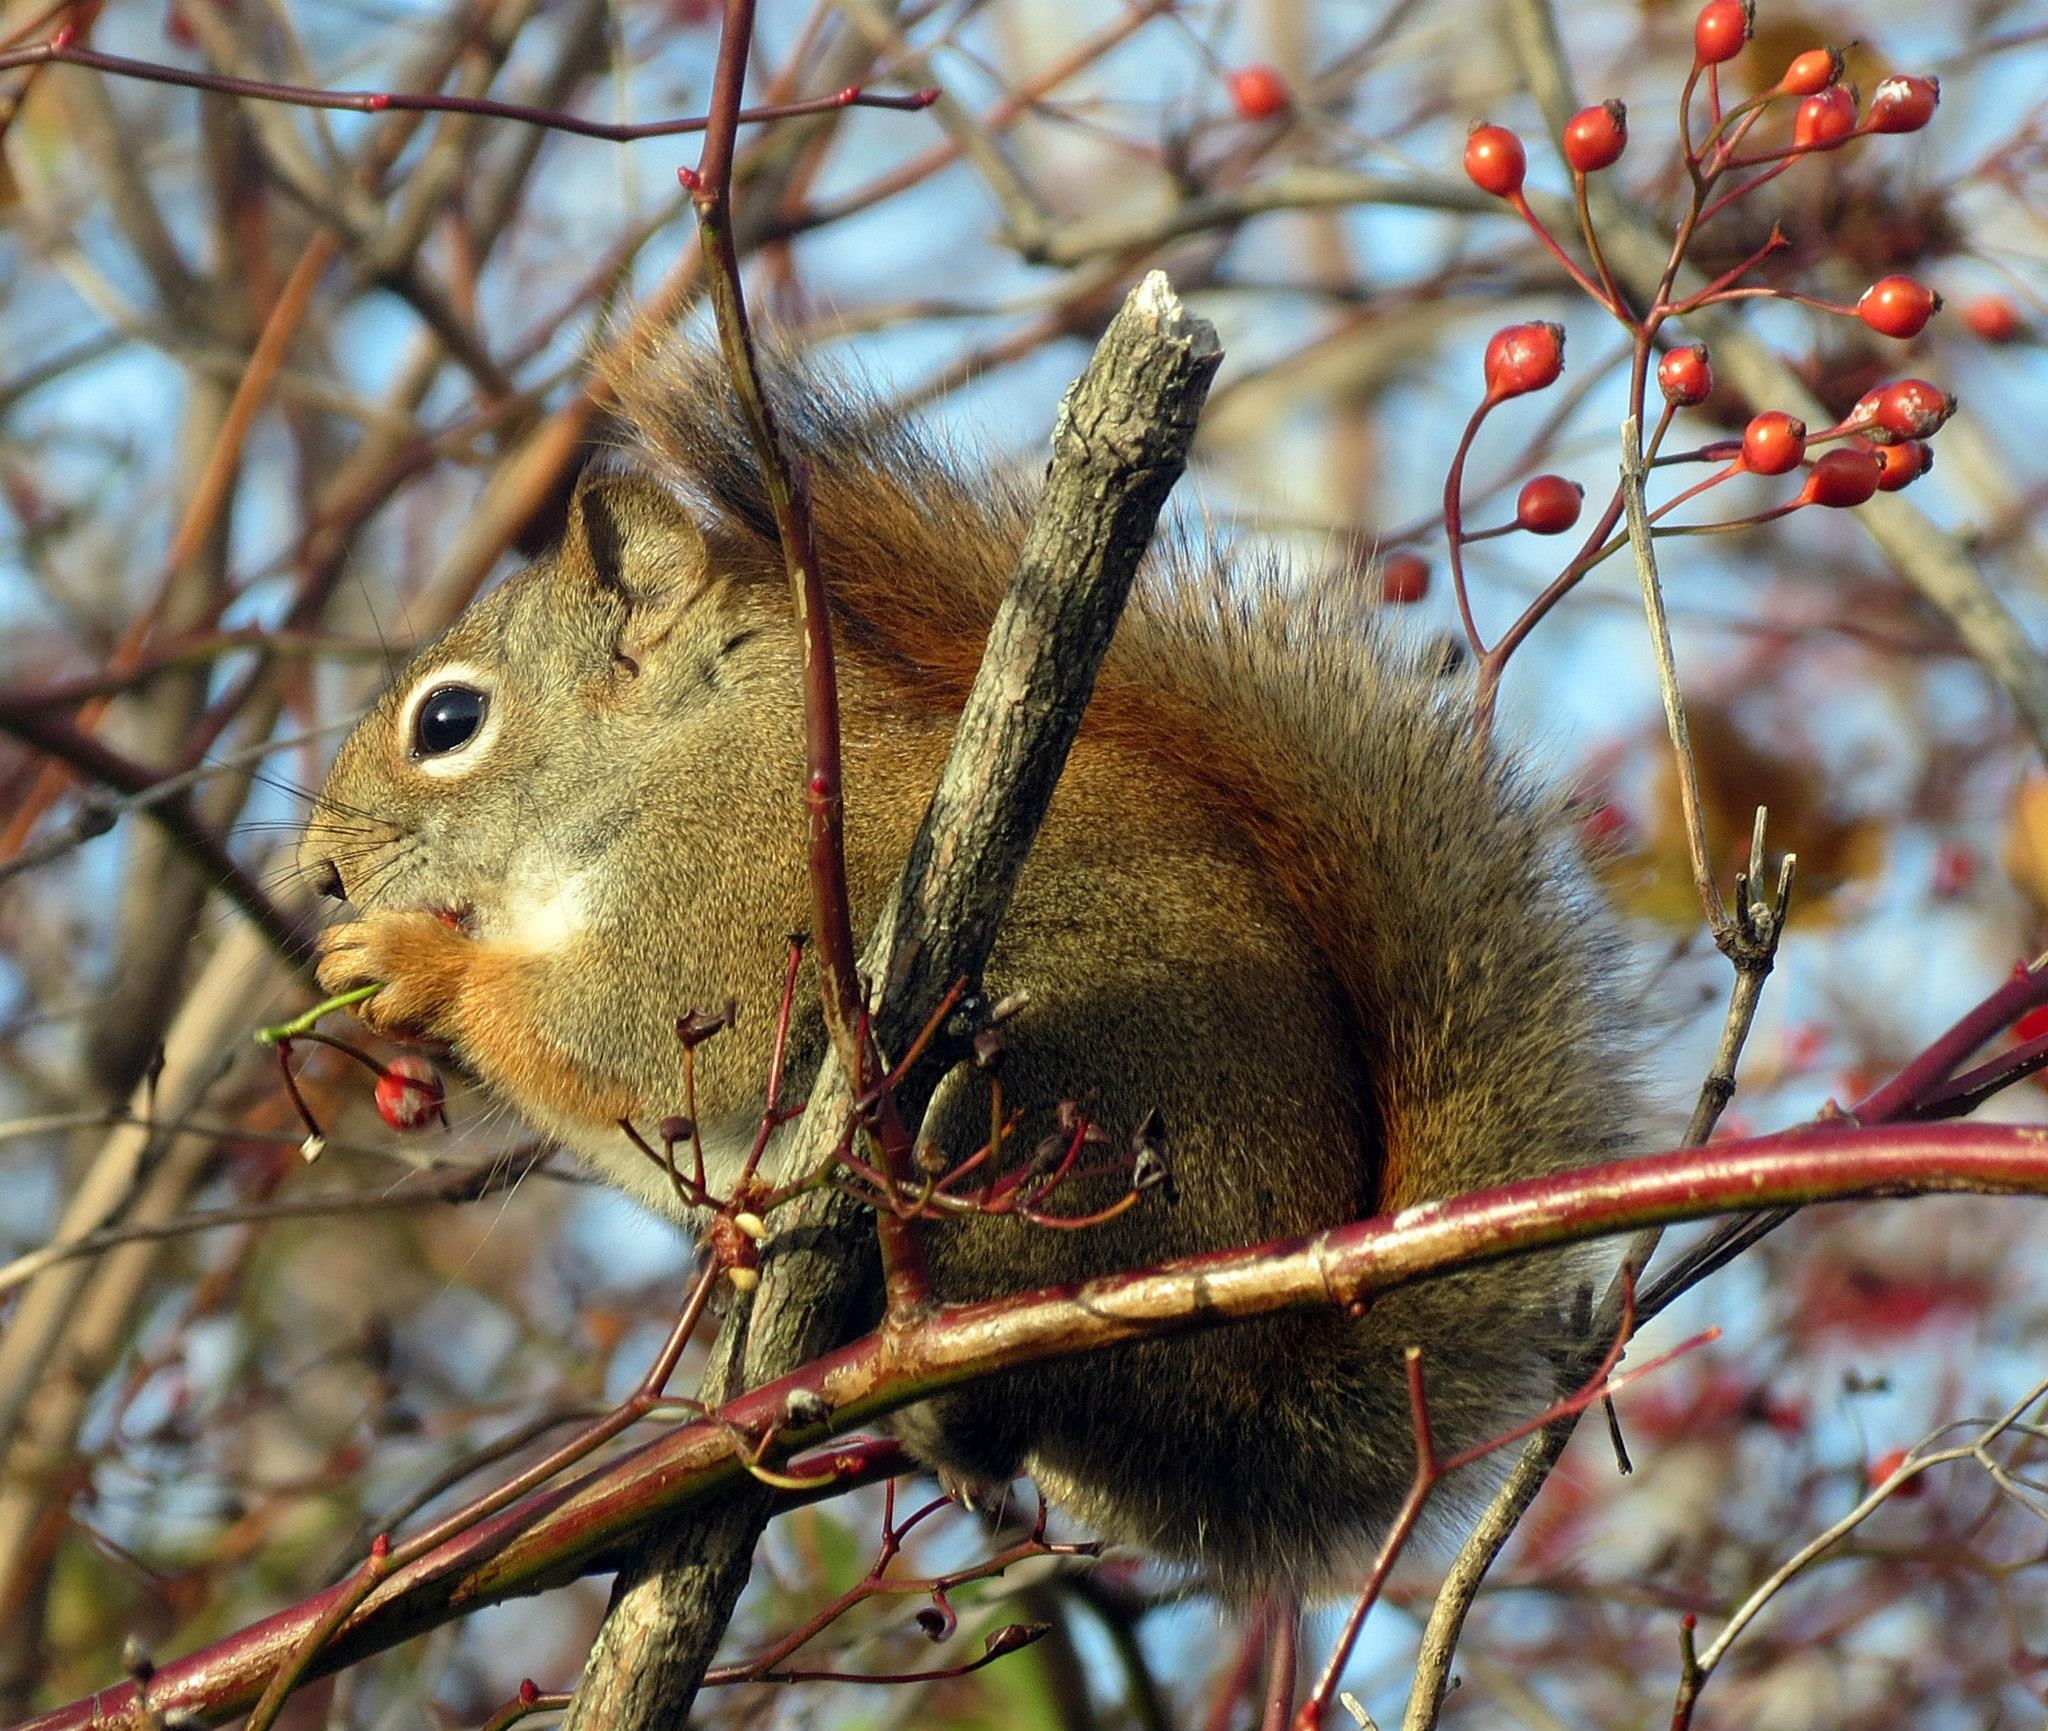 Squirrel Close Up 3 by Harold L Doherty